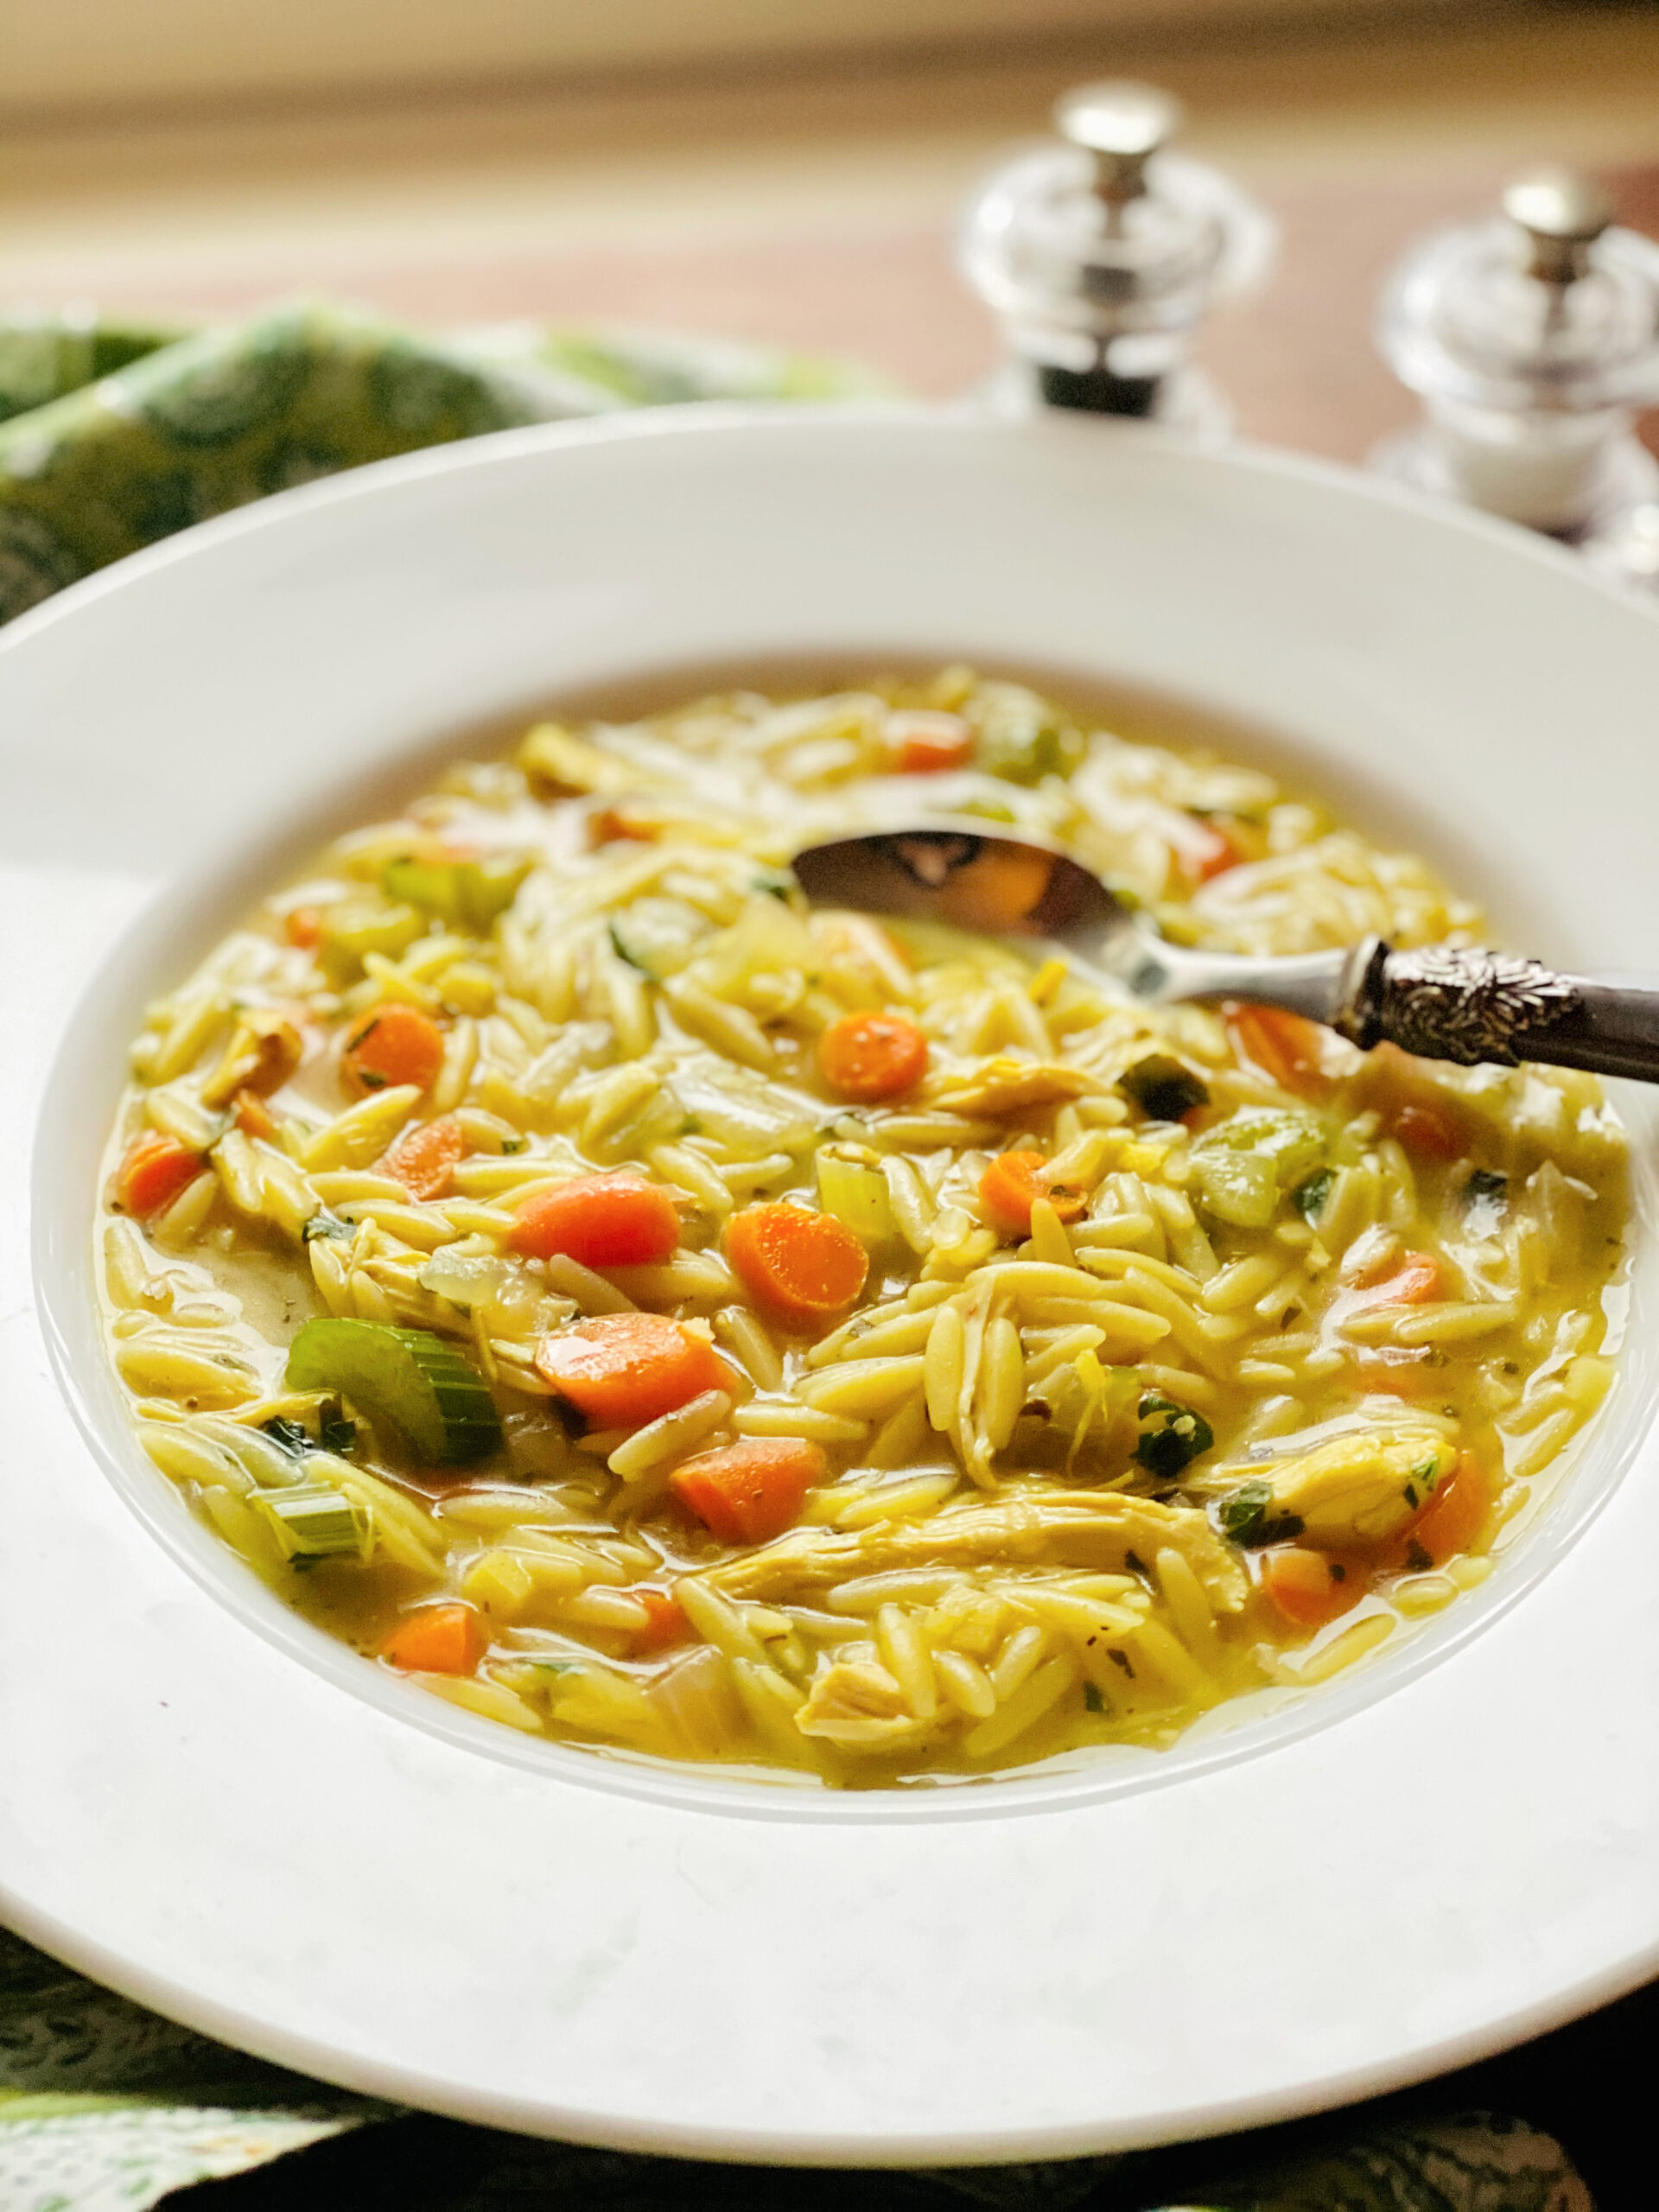 bowl of chickne orzo soup with spoon and salt and pepper shakers